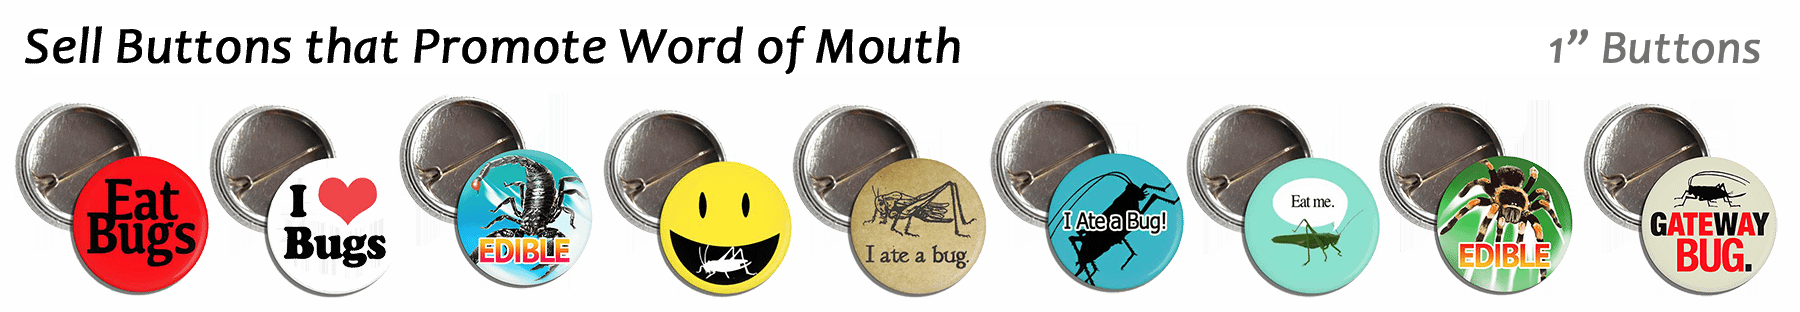 Edible Insect Buttons